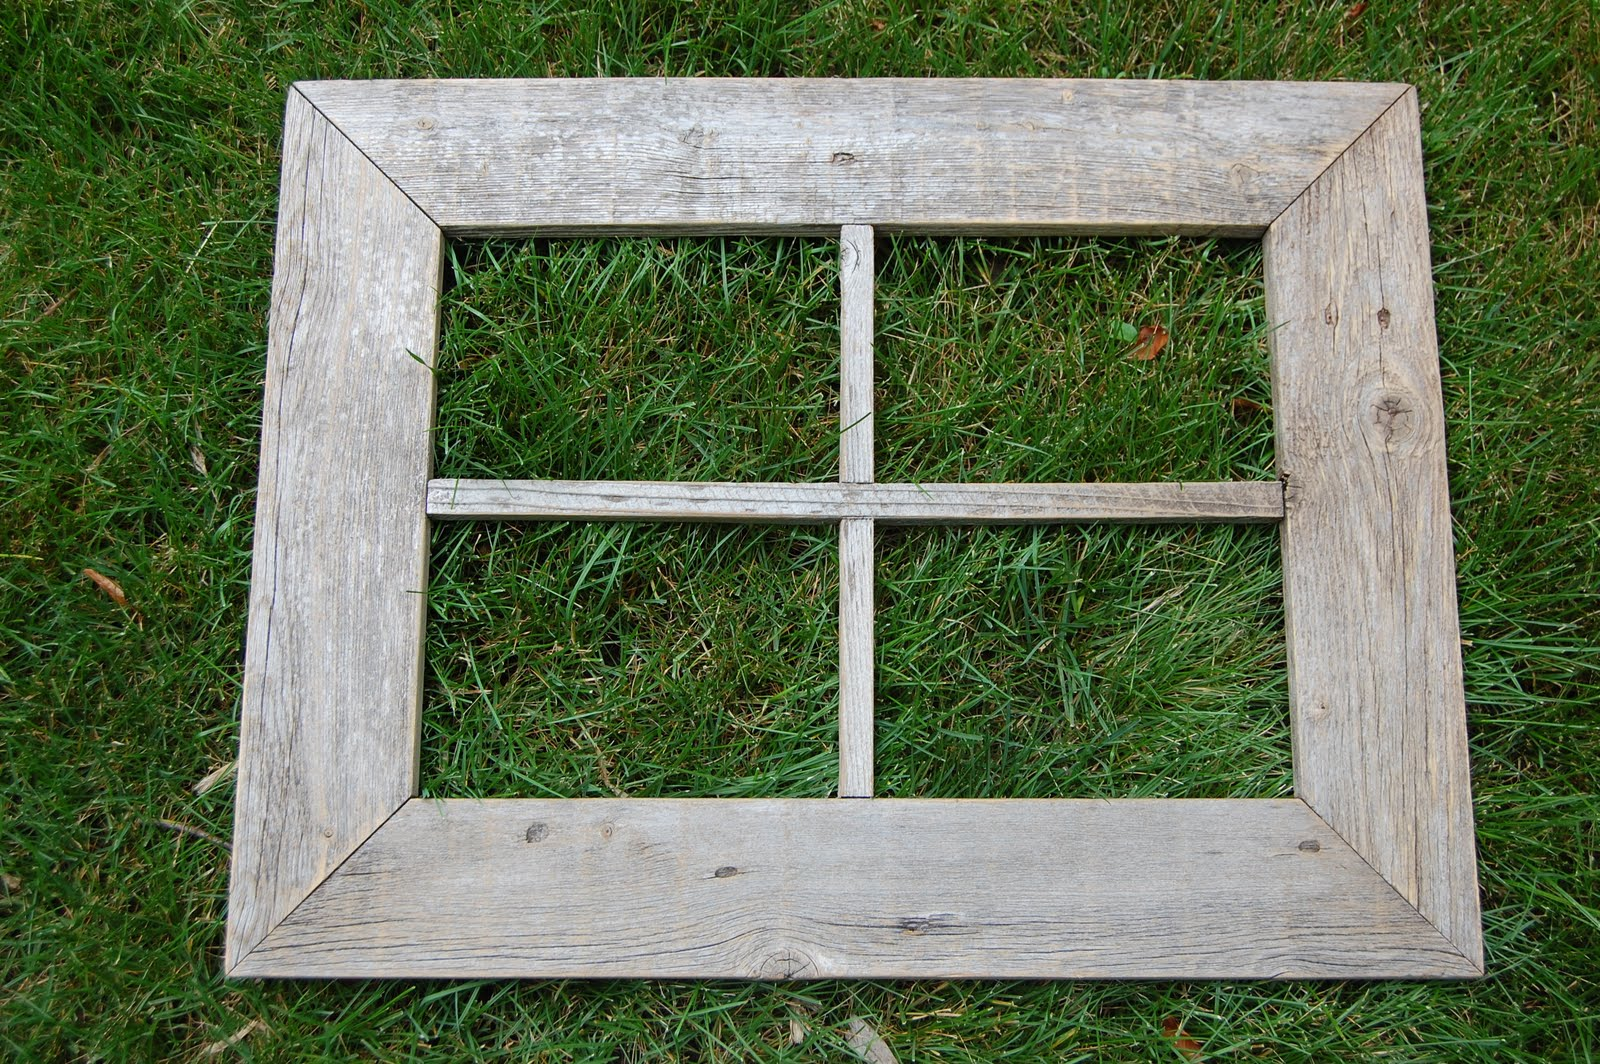 ... Pinterest Pallet Project Ideas. on old furniture decorating ideas